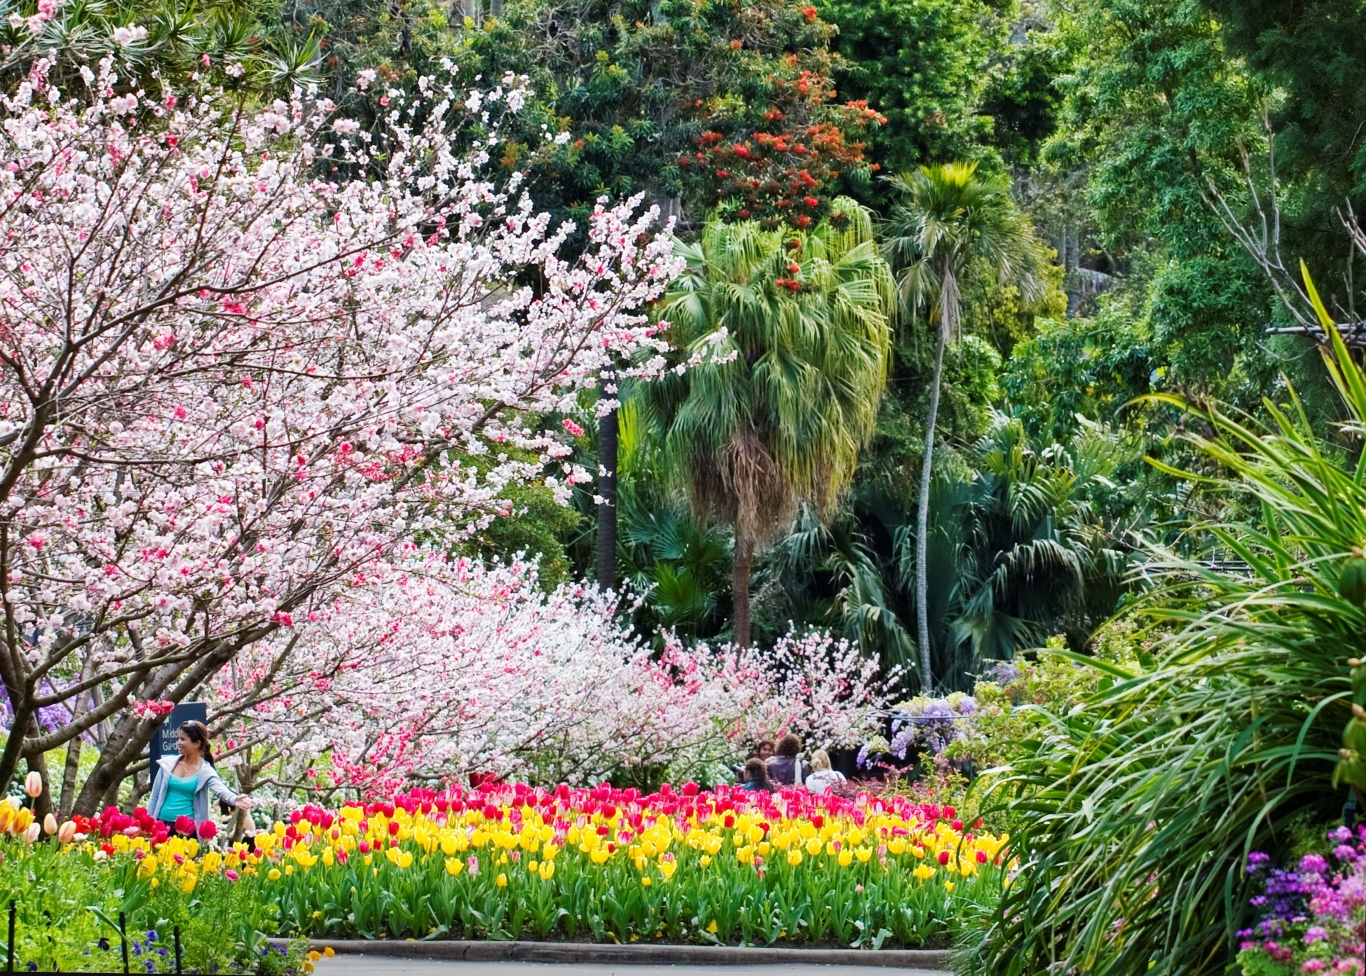 Merveilleux Colour Photograph Of The Royal Botanic Garden, Sydney During Spring.